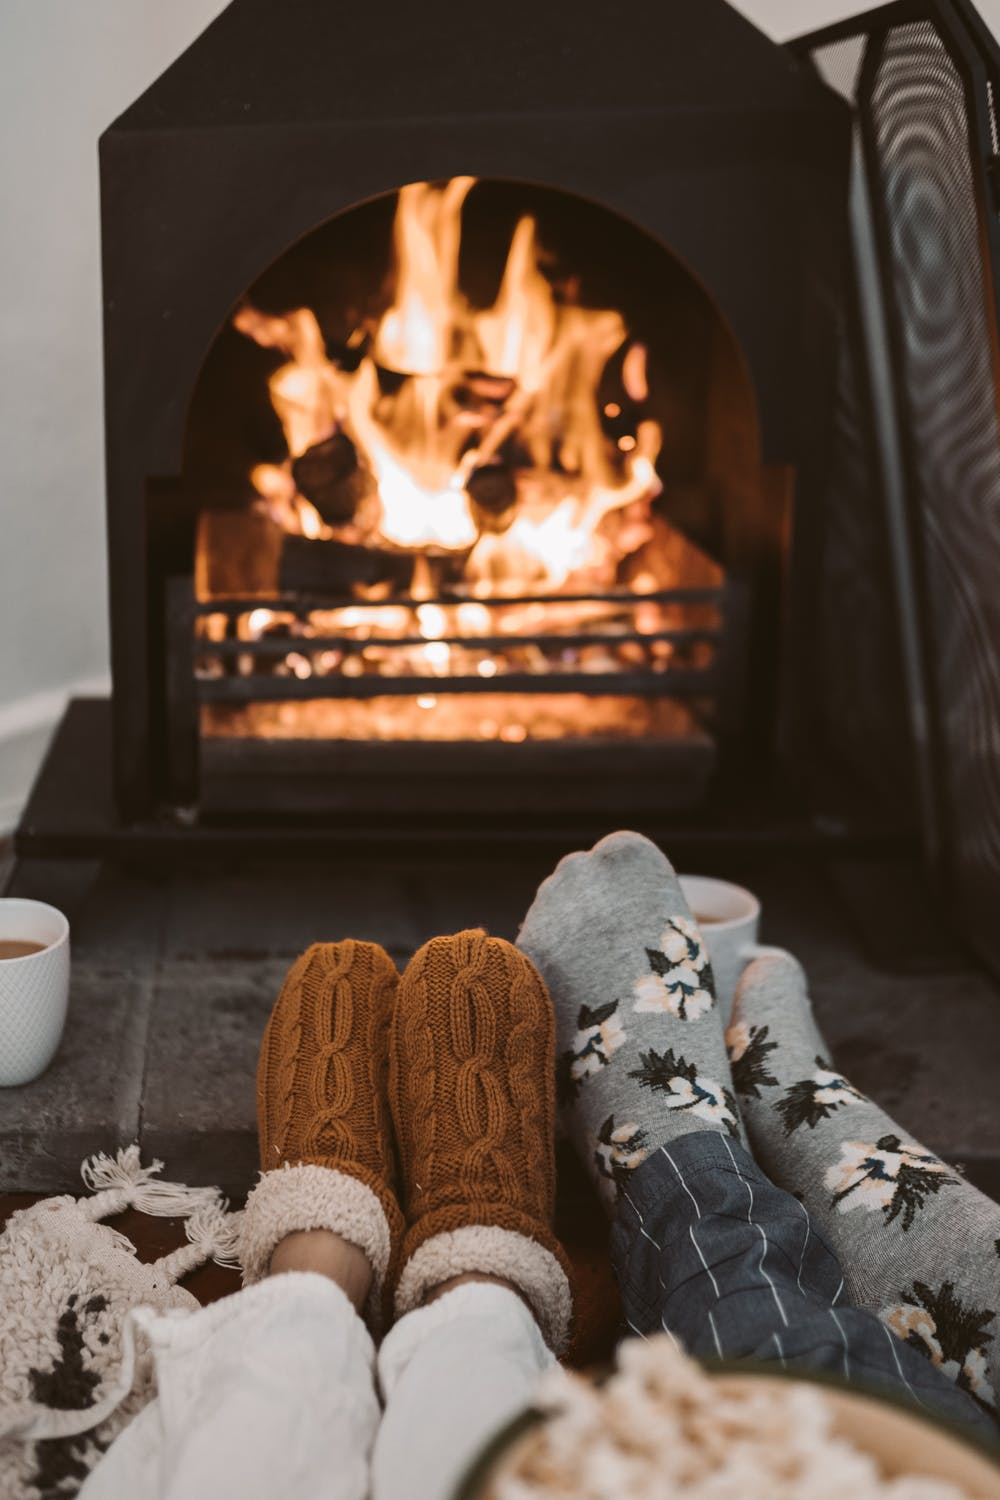 Cozy winter wallpaper for iphone with fireplace, fireplace wallpaper